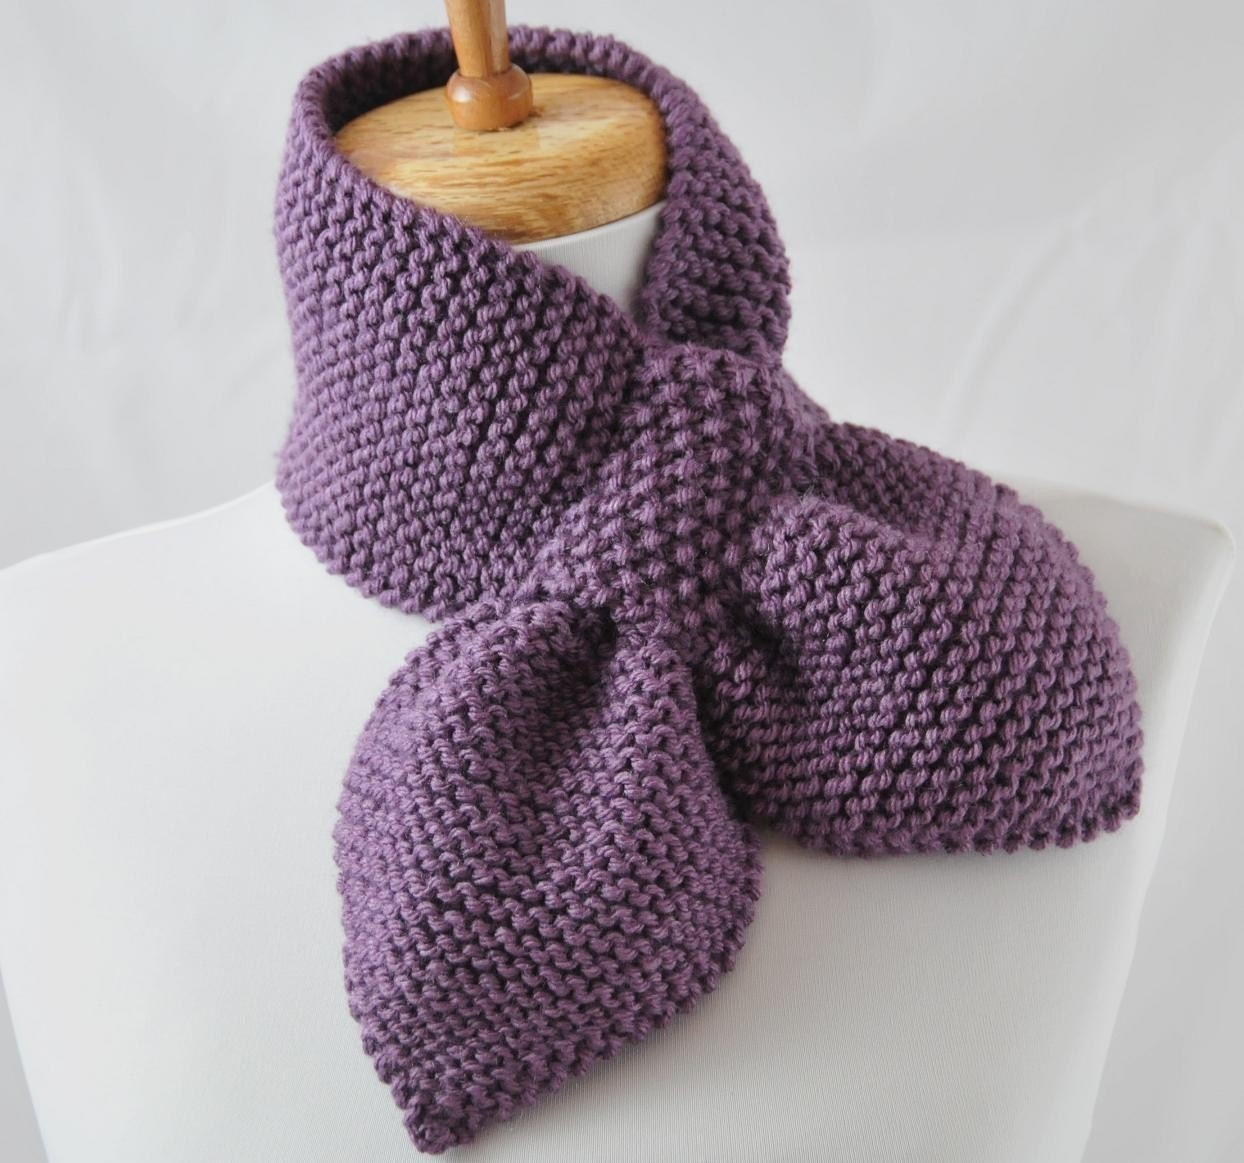 KNITTING PATTERN The Original Stay Put Scarf Pull by PhylPhil